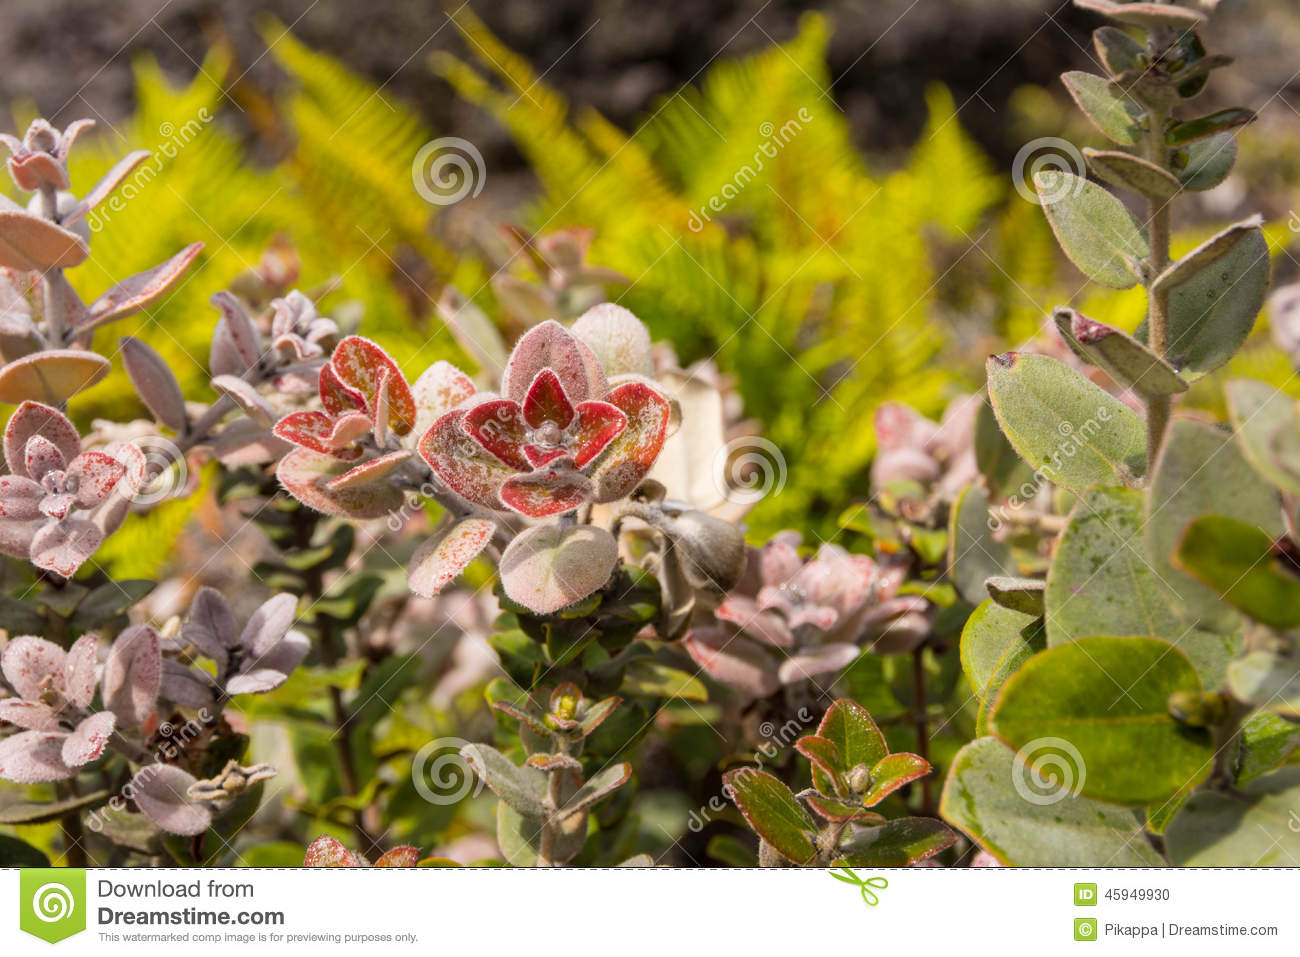 The hawaiian flowers stock photo image of plant foliage 45949930 download the hawaiian flowers stock photo image of plant foliage 45949930 izmirmasajfo